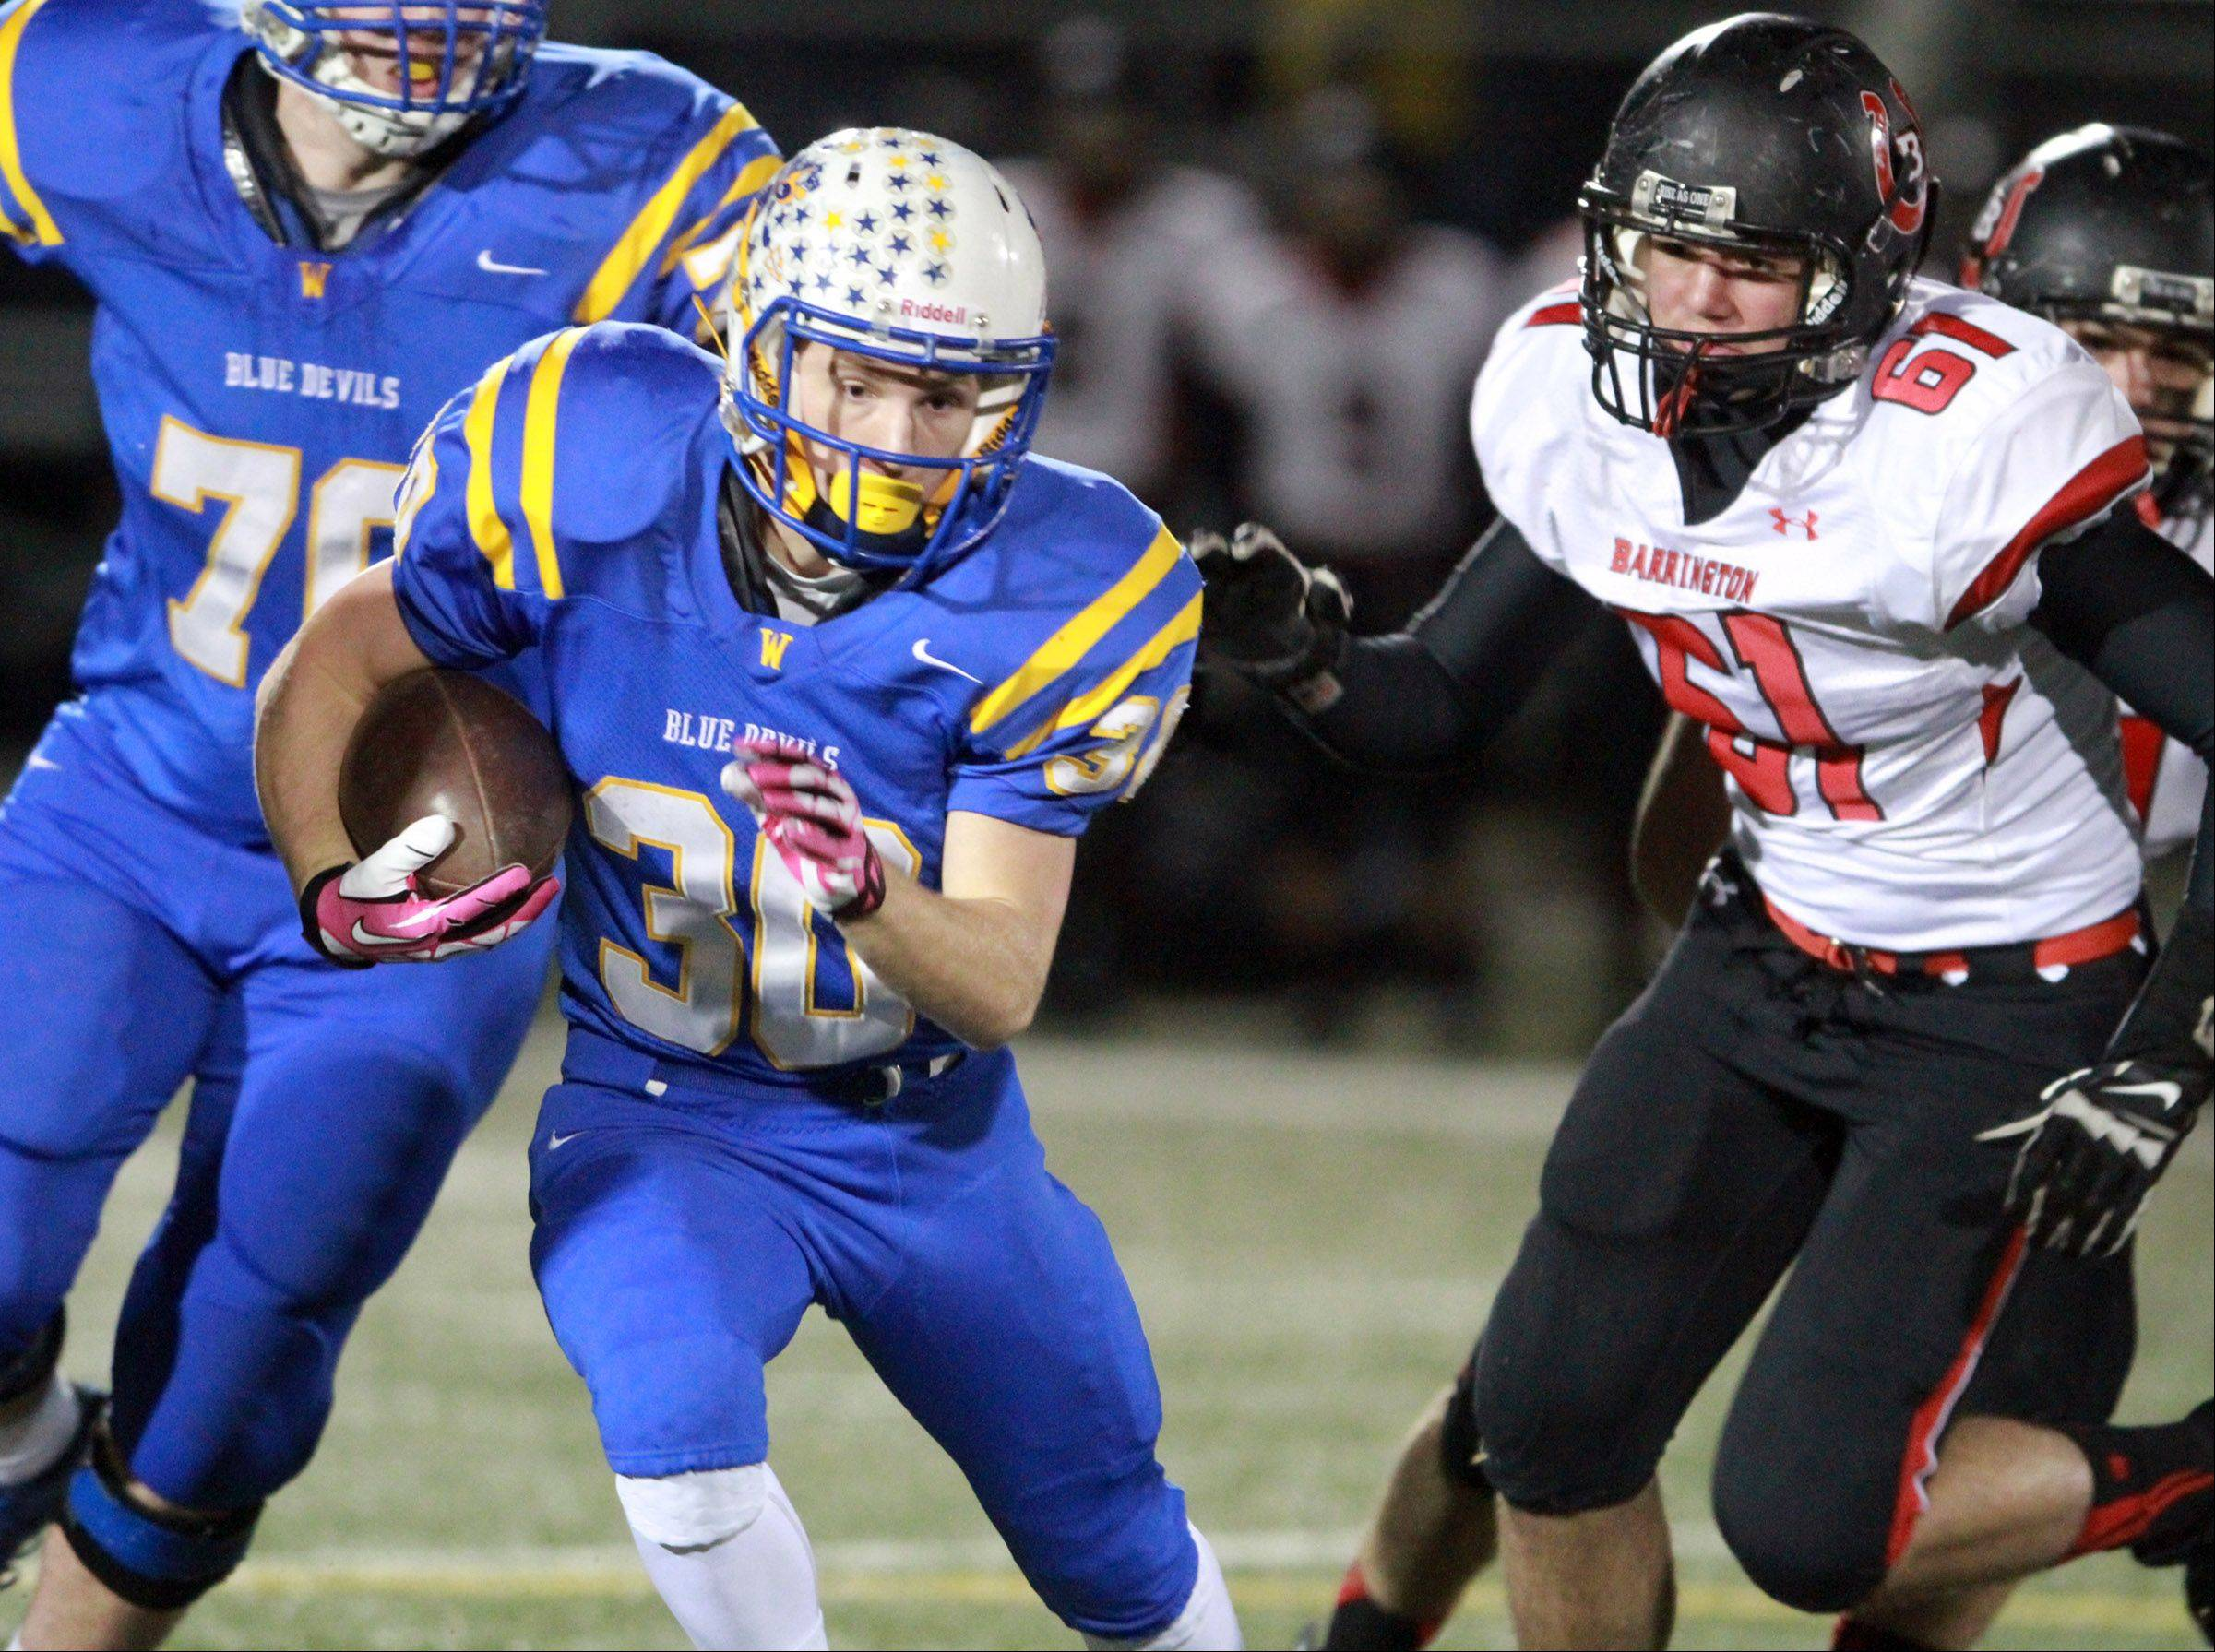 Warren running back Maxwell Sorby runs past Barrington defender Kyle Meckert in the first half Saturday in Gurnee.